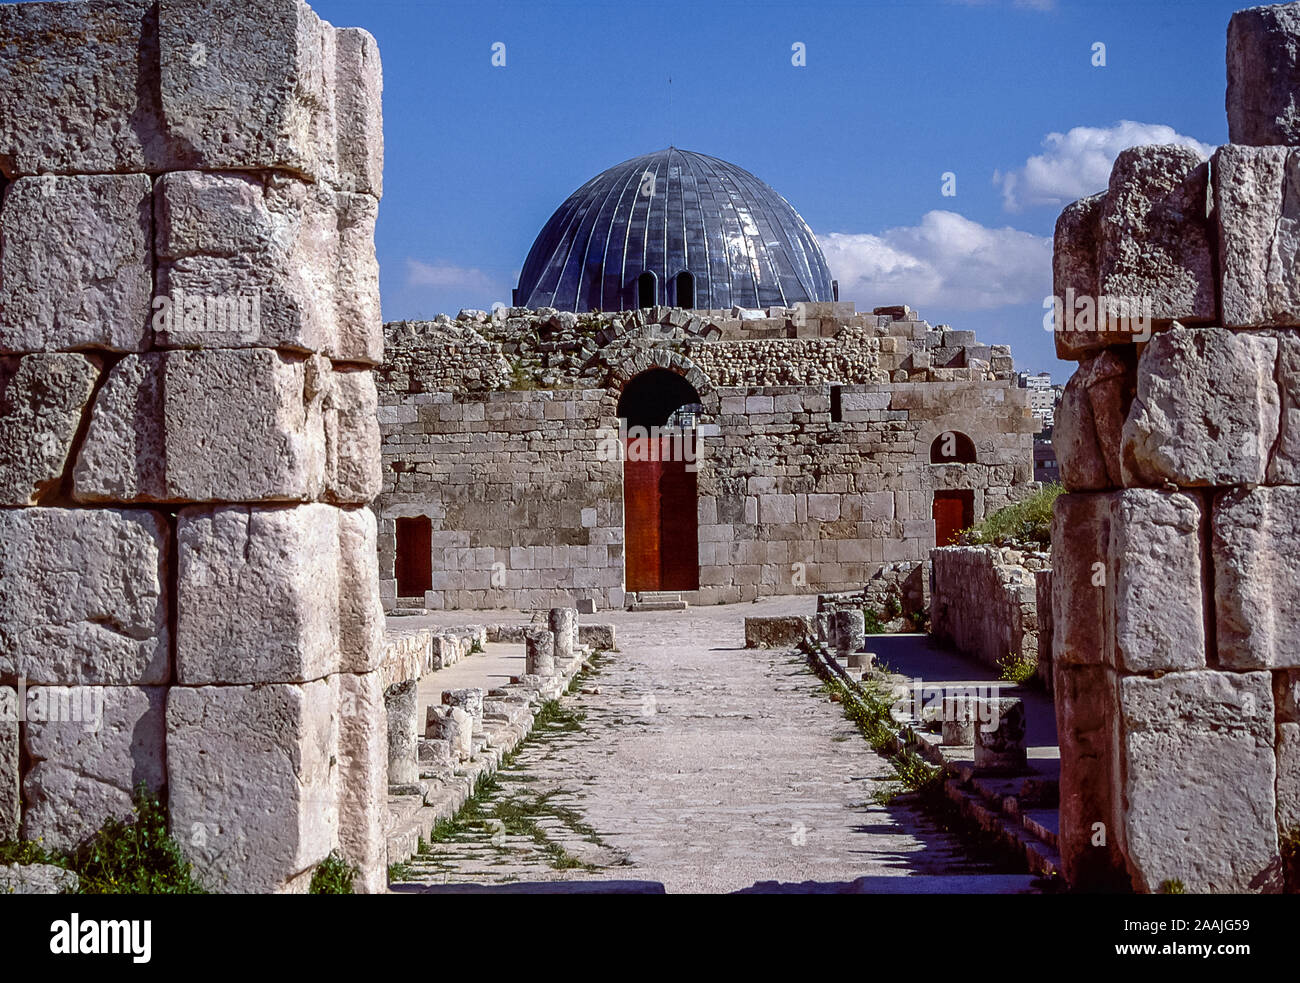 The remains and ruins of the ancient Roman Temple of Hercules and the Umayyad Palace at the Citadel on Jabal al Qula'a Hill overlooking the Jordanian capital city of Amman in the Middle East in 1998 Stock Photo